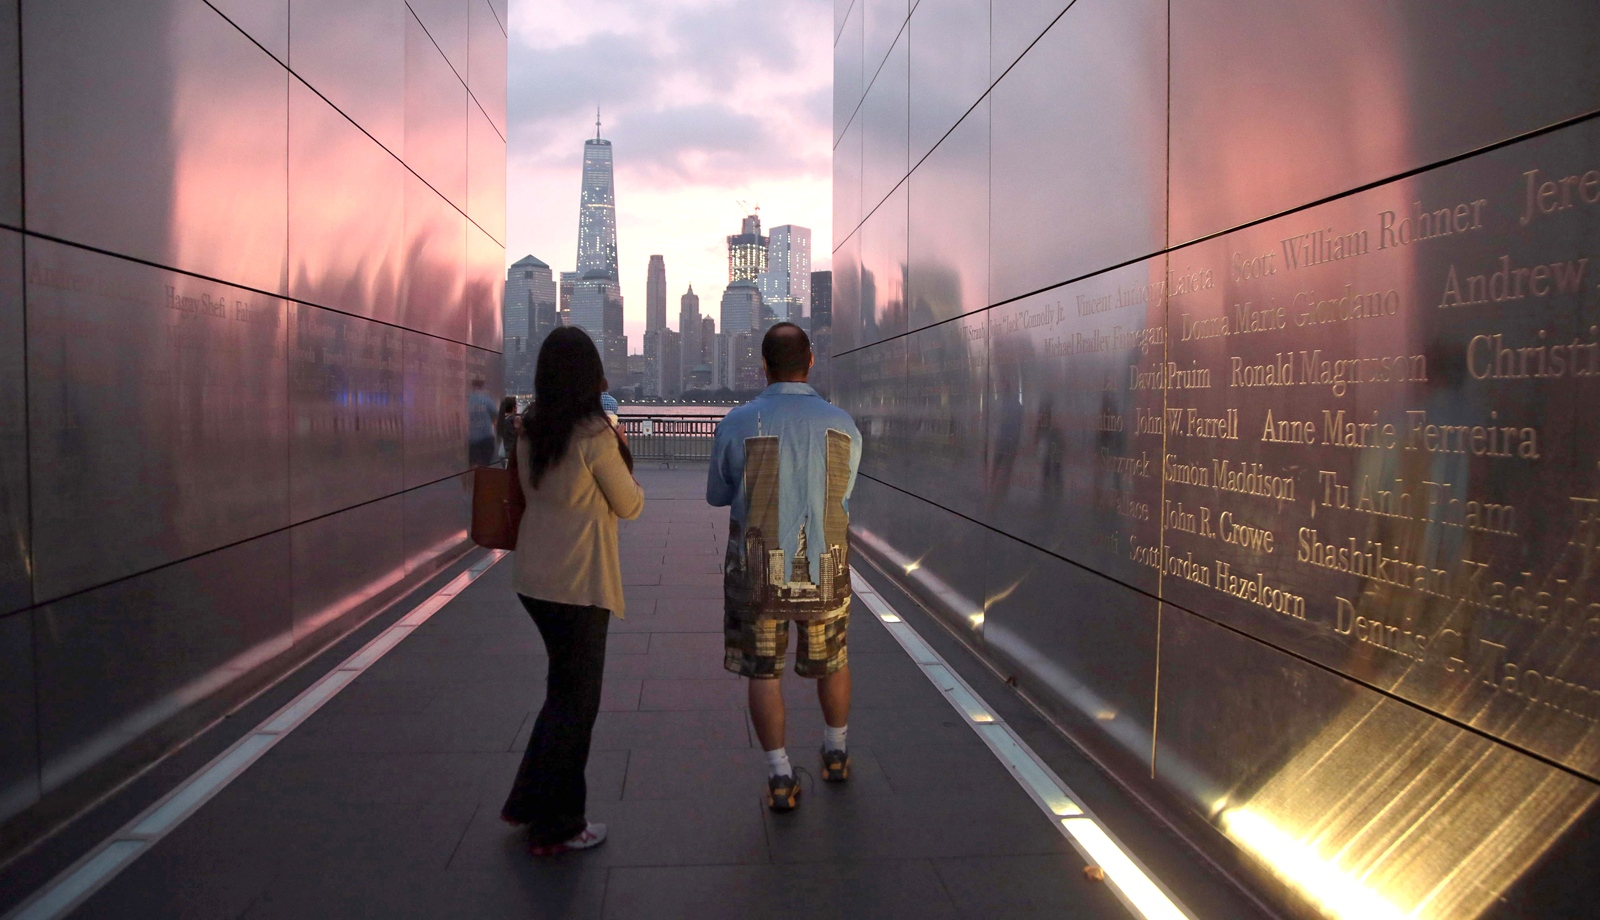 Steven Monetti Jr. and his fiancee Michelle Johnson walks through the Empty Sky Memorial in Jersey City on the morning of the 15th Anniversary of the September 11 attacks.